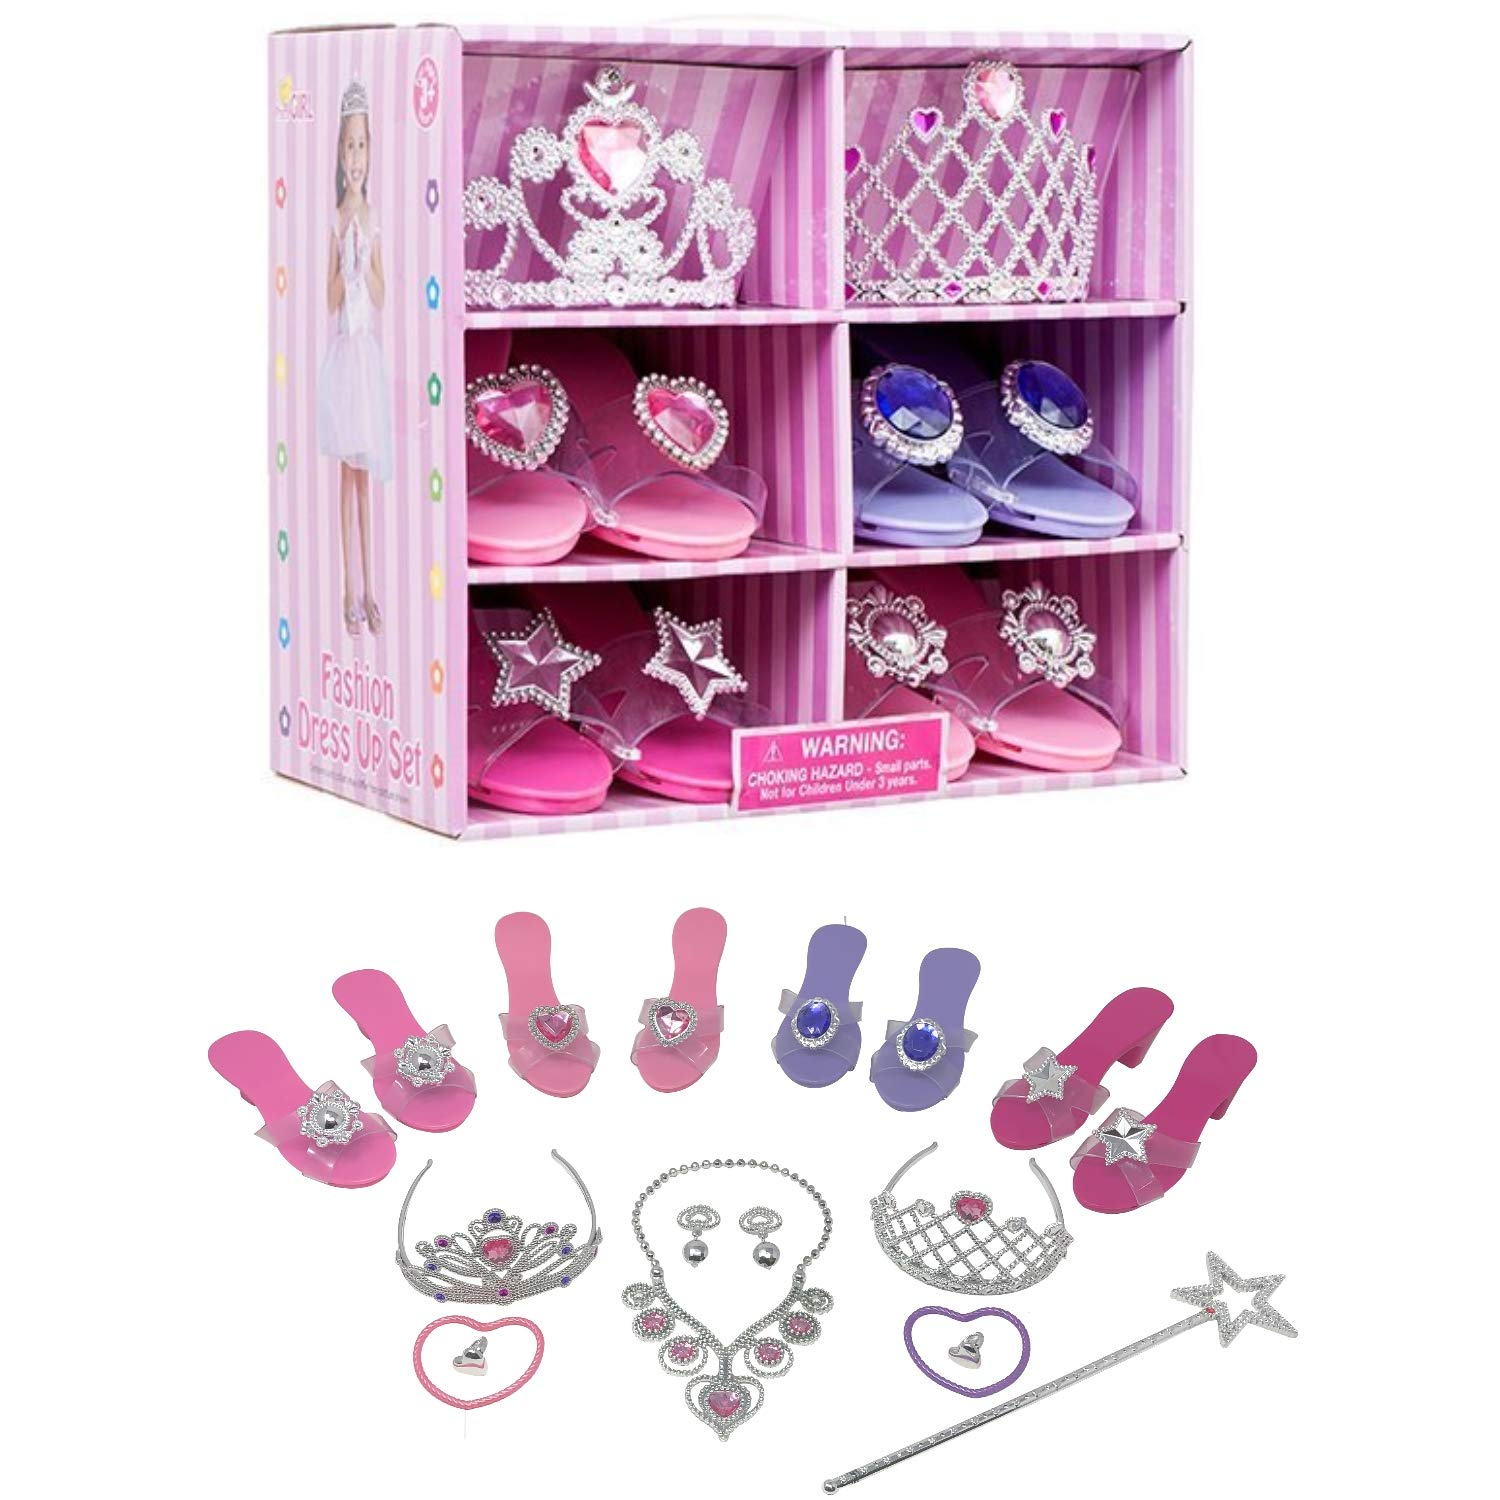 Royal Dreams Princess Shoes & Tiara Dress up Play . Includes 4 Princess Shoes for Girls 2 Tiaras Necklace Bracelets & Earrings! Perfect Little Girl Toys Role Play Playset by Royal Dreams